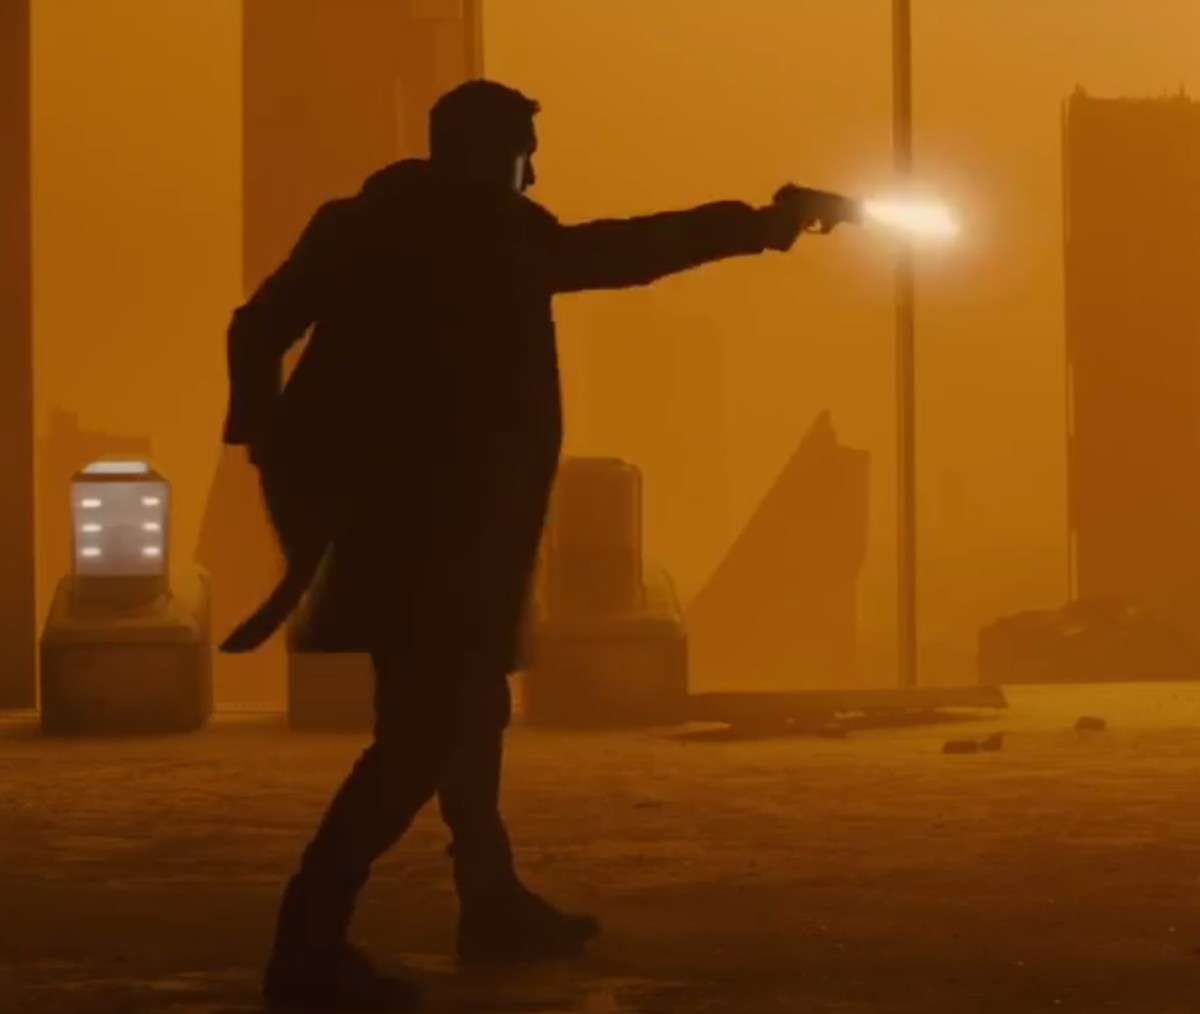 The Latest BLADE RUNNER 2049 Reveals Much More Of The Plot